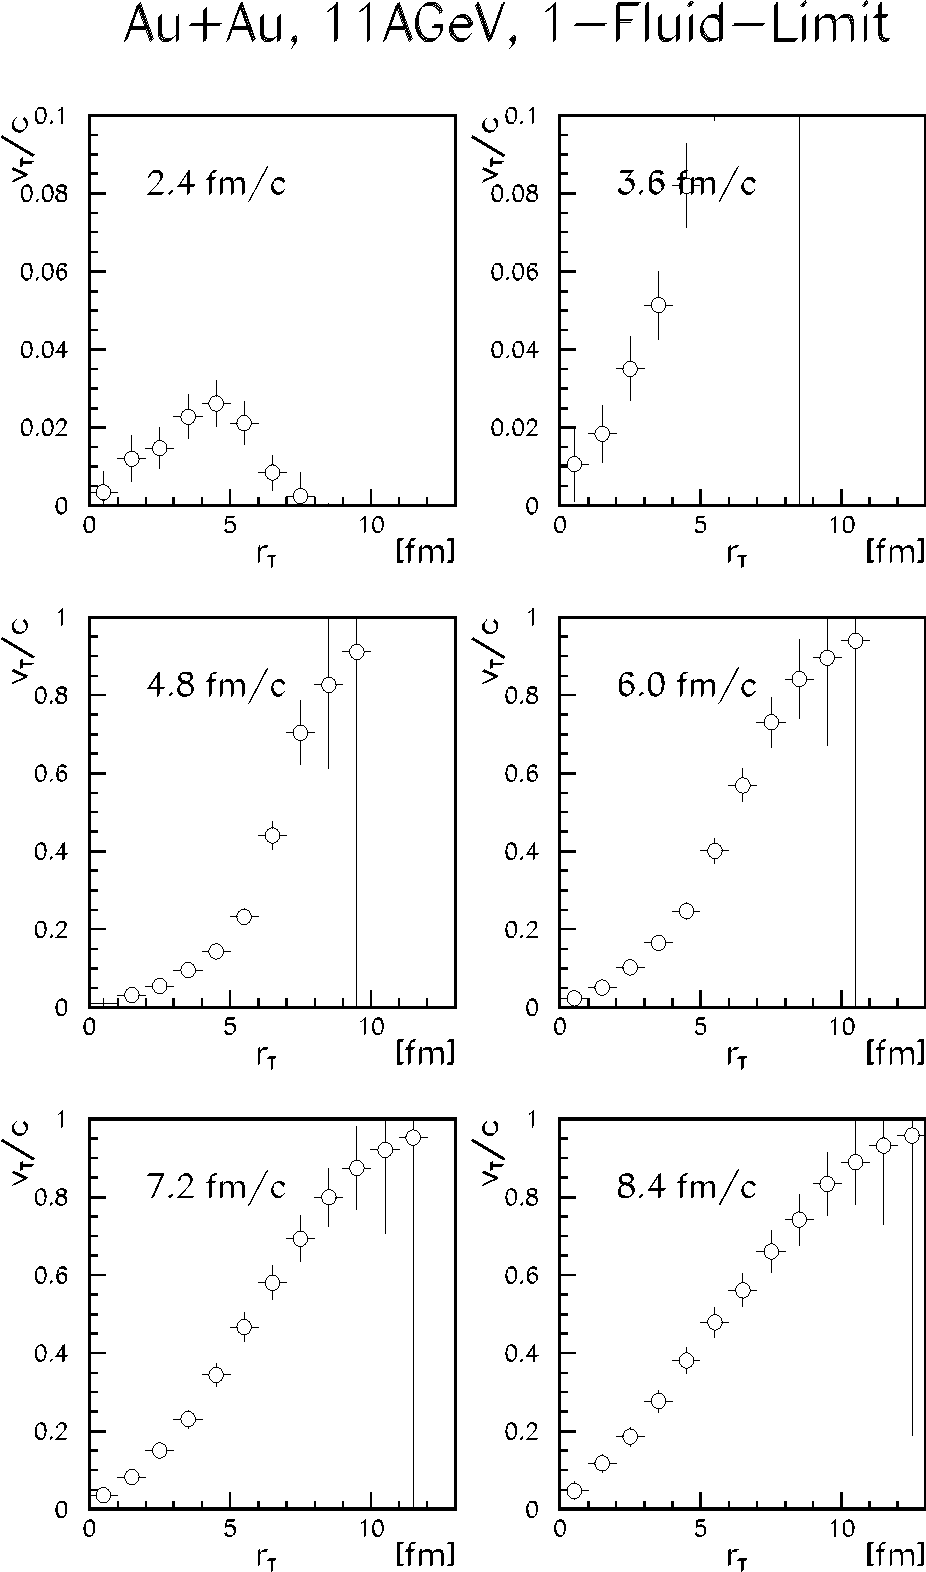 Figure 2: The evolution of the transverse velocity profile in the one-fluid limit (b=0 fm).